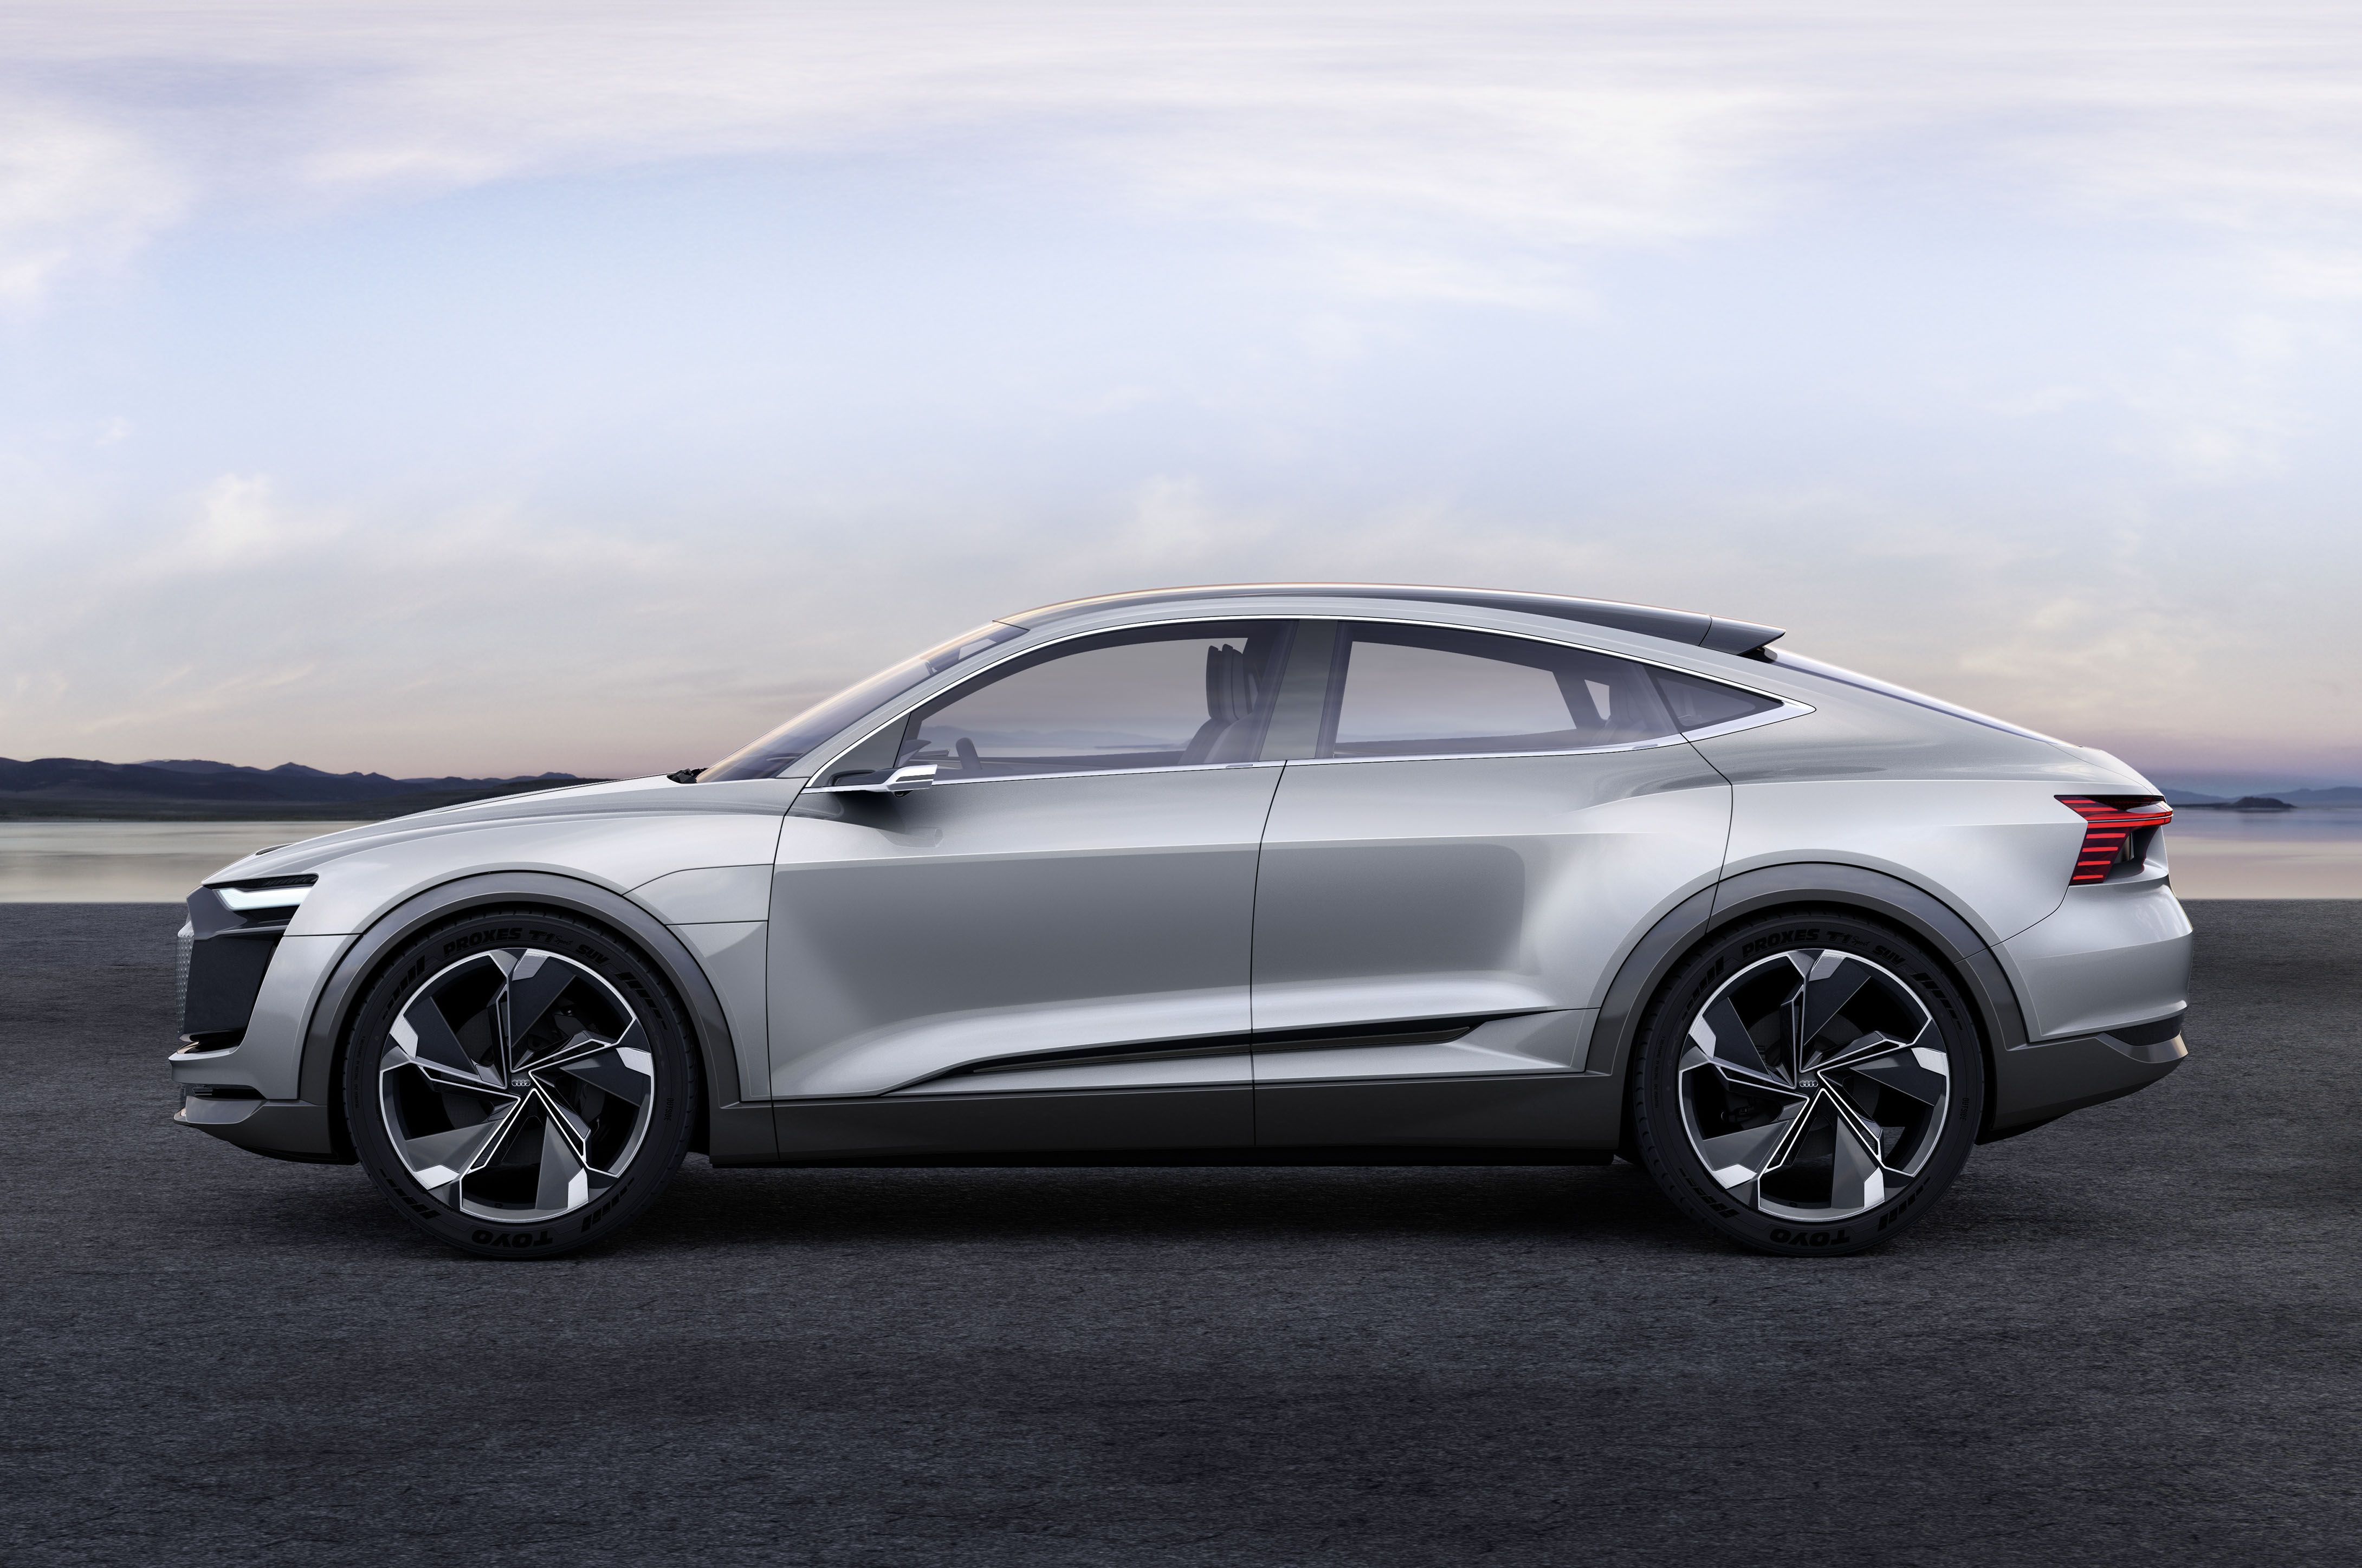 The Audi E Tron Sportback Concept Features An Electric Drive System